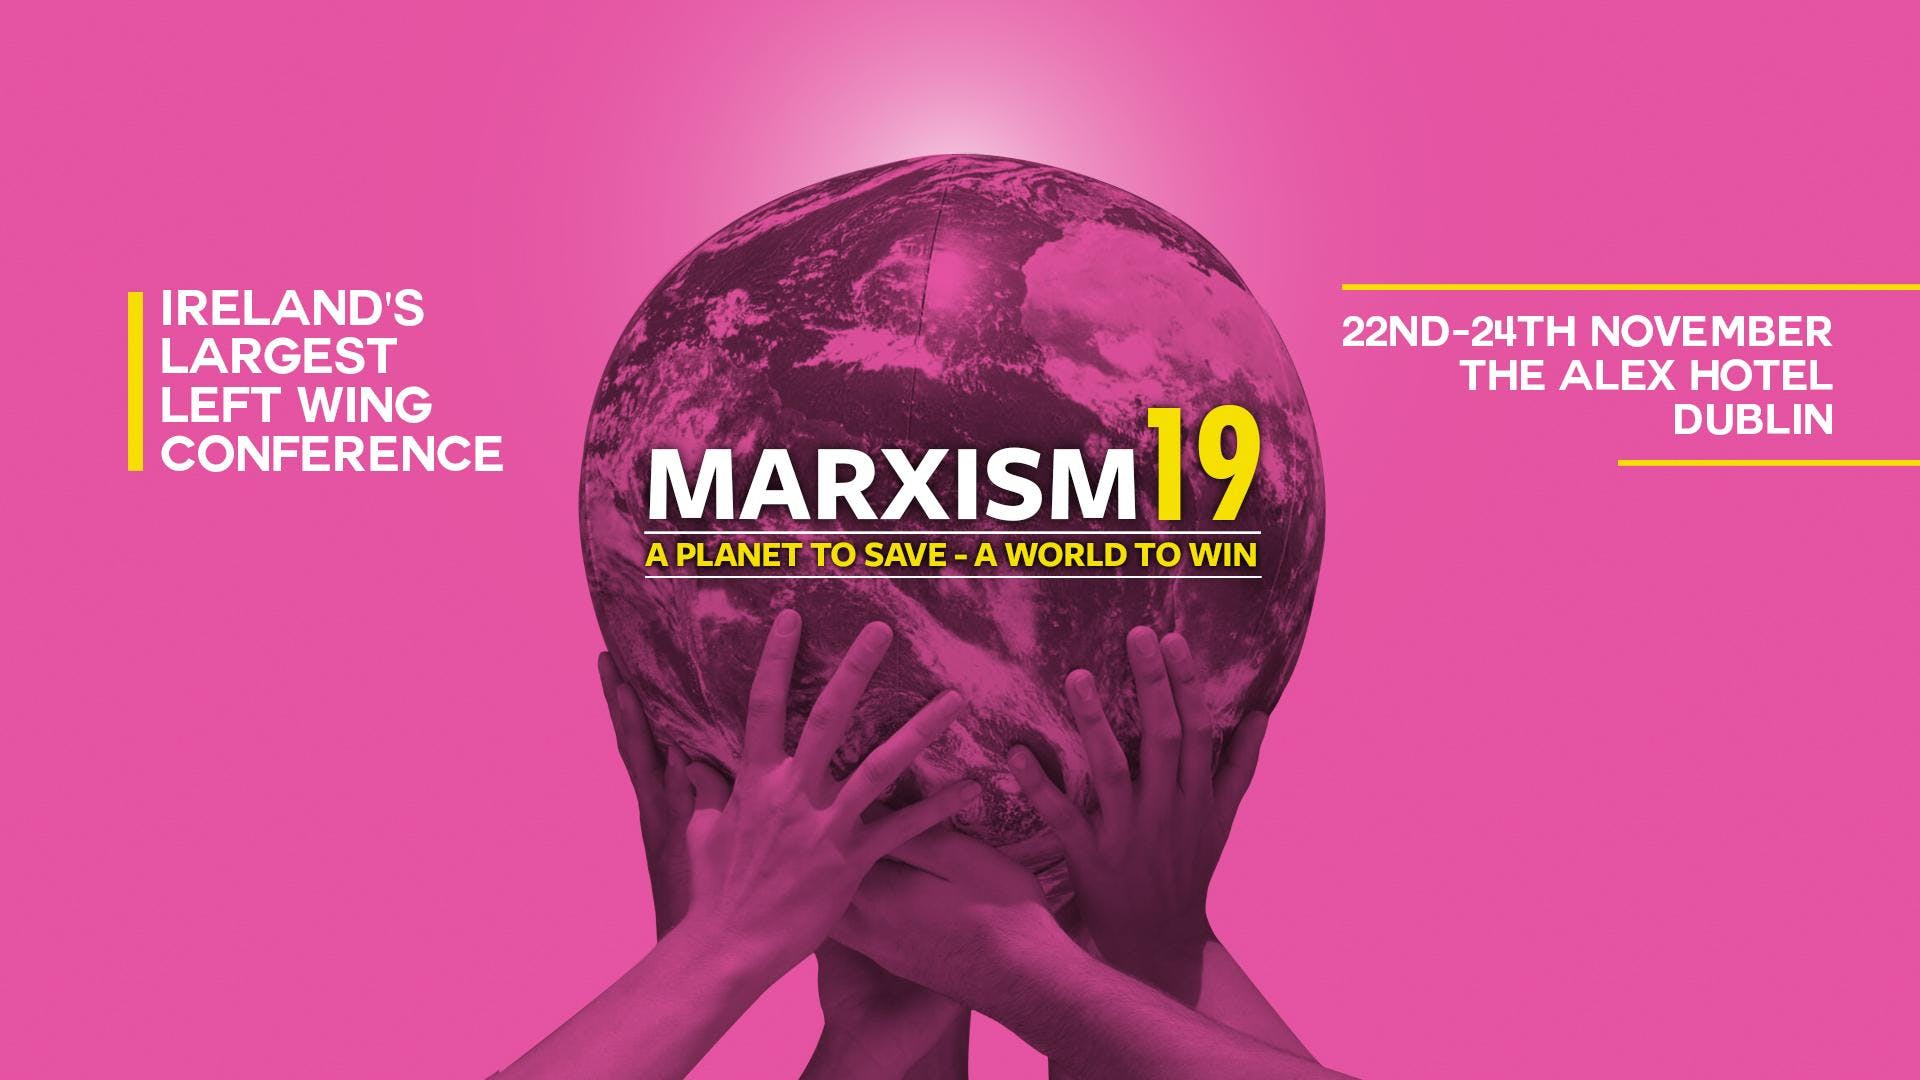 Marxism 2019  A Planet to Save - A World to Win